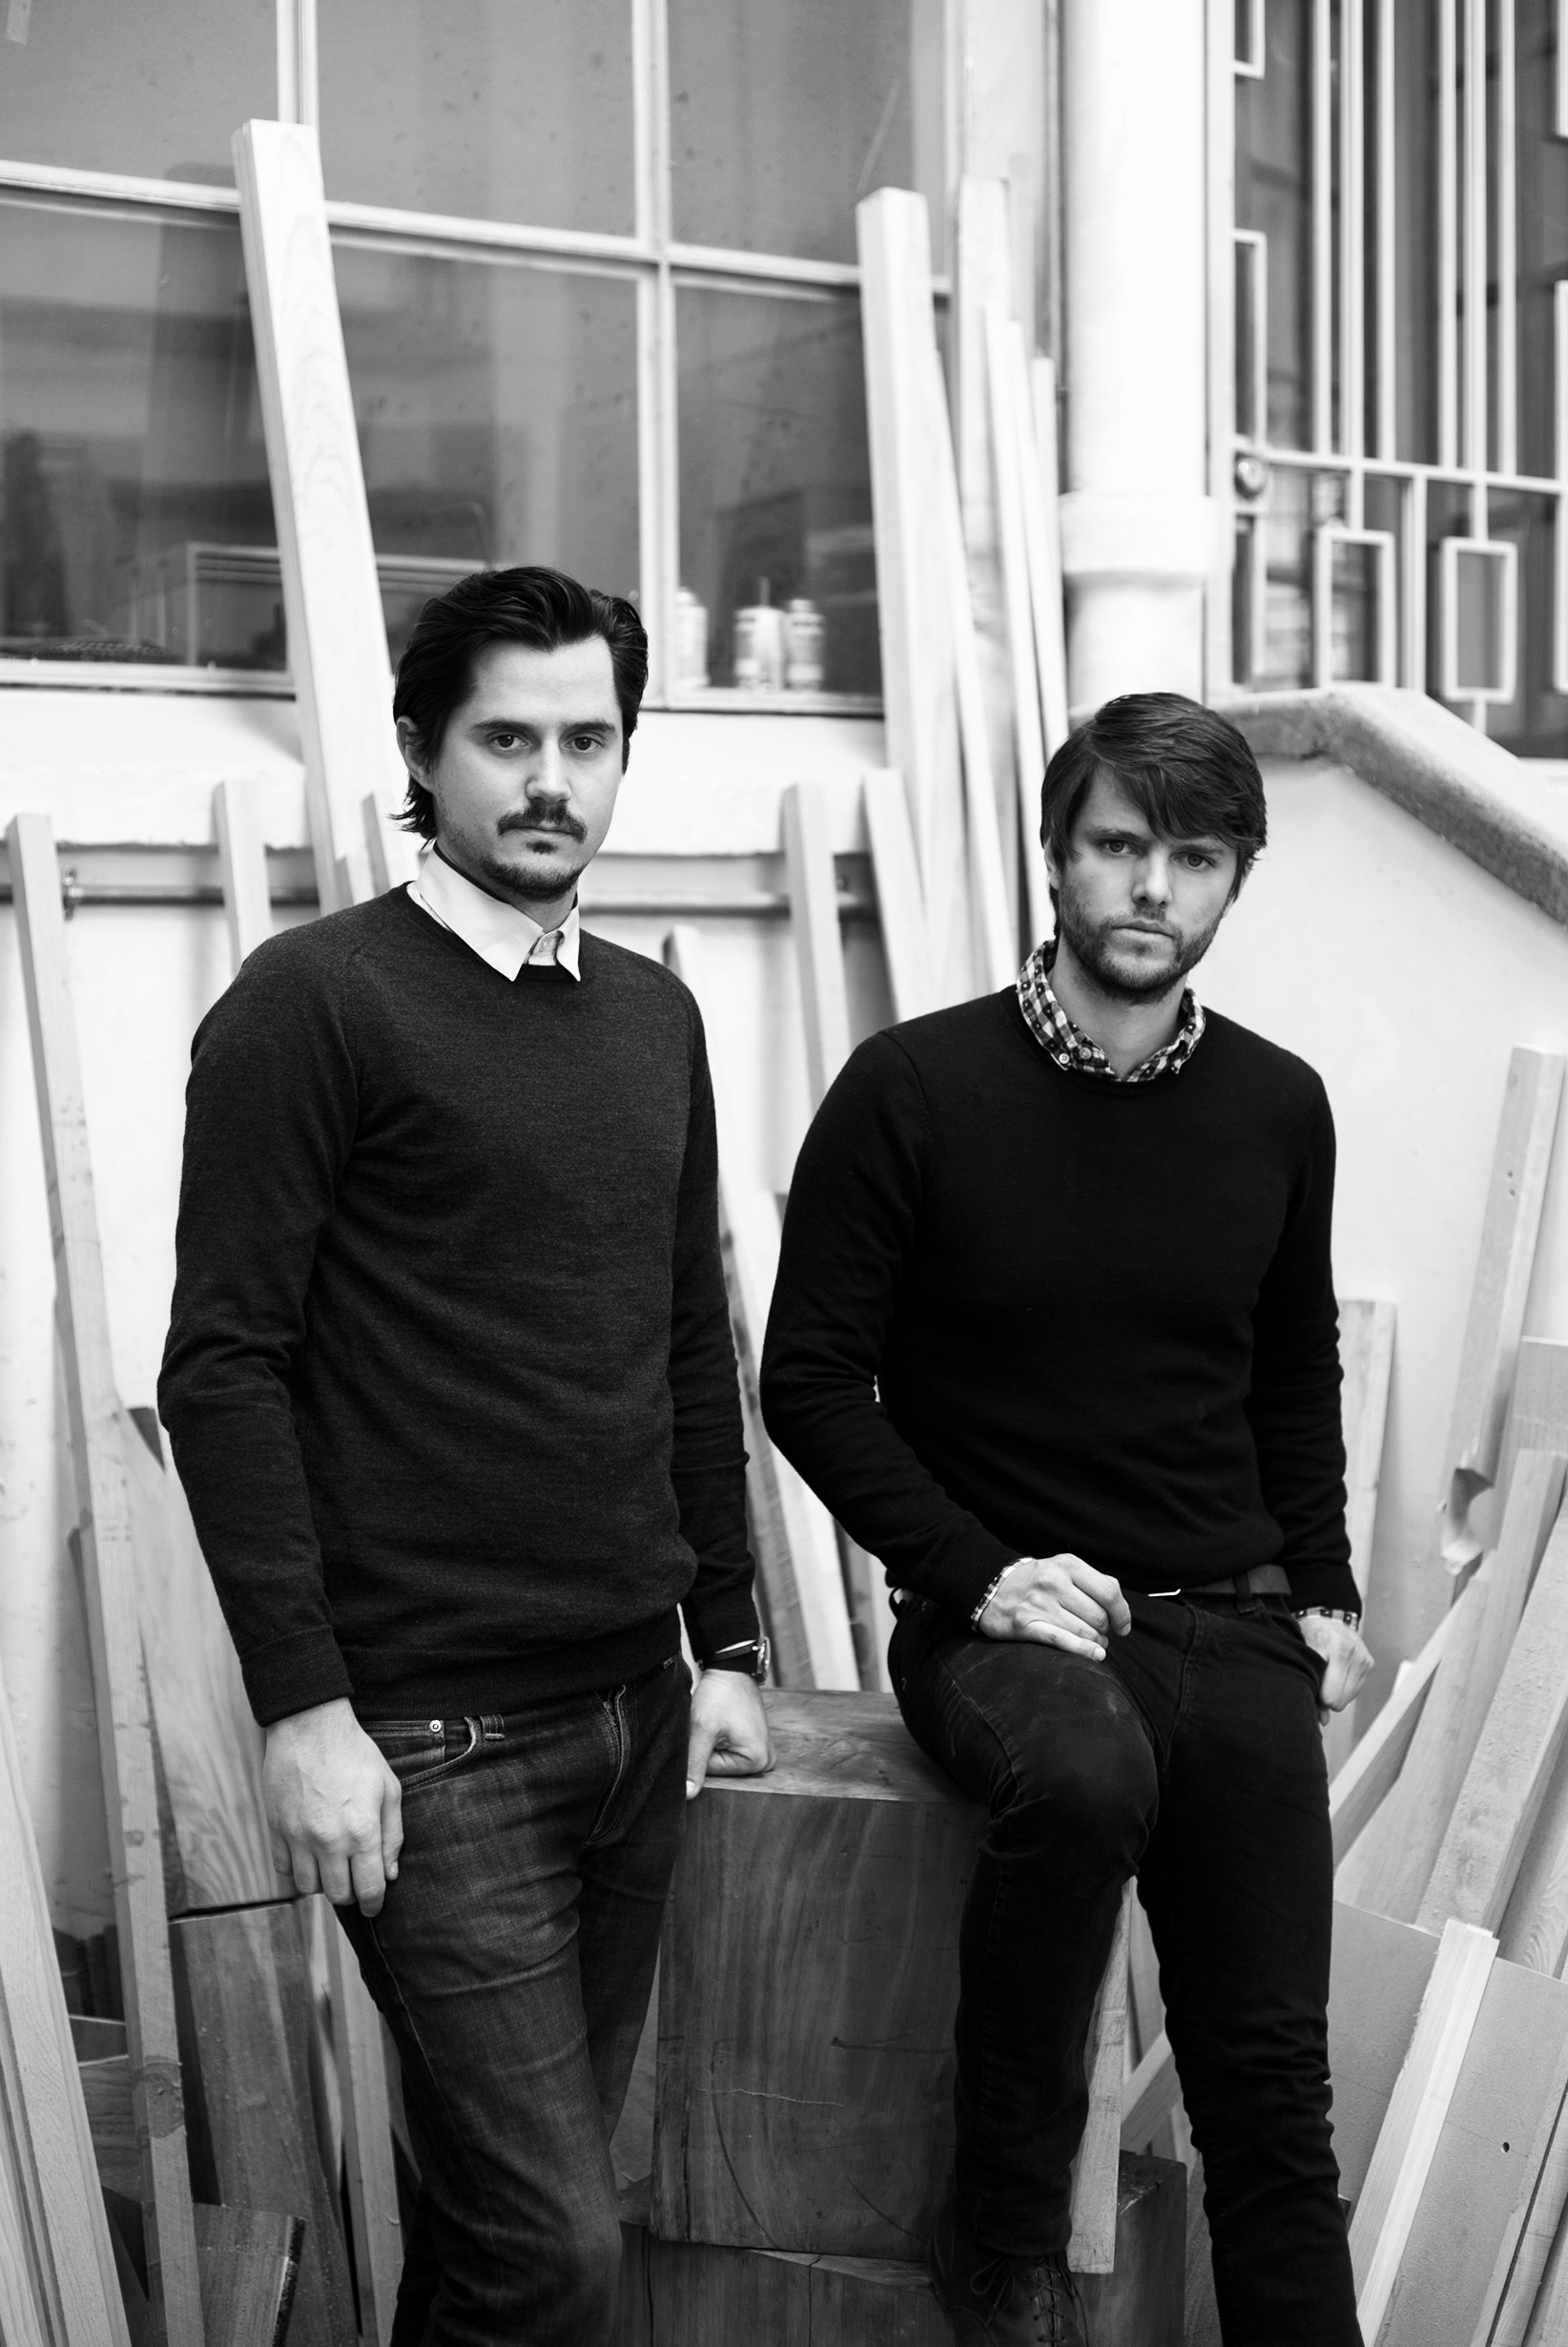 RODRIGO BERRONDO & PABLO IGARTÚA    With a specialty in woodwork, Rodrigo Berrondo and Pablo Igartúa combine functionality and aesthetics in large-scale furniture, blending classic techniques with modern tools. They seek to build enduring pieces of unique design and continuously work at perfecting their craft.